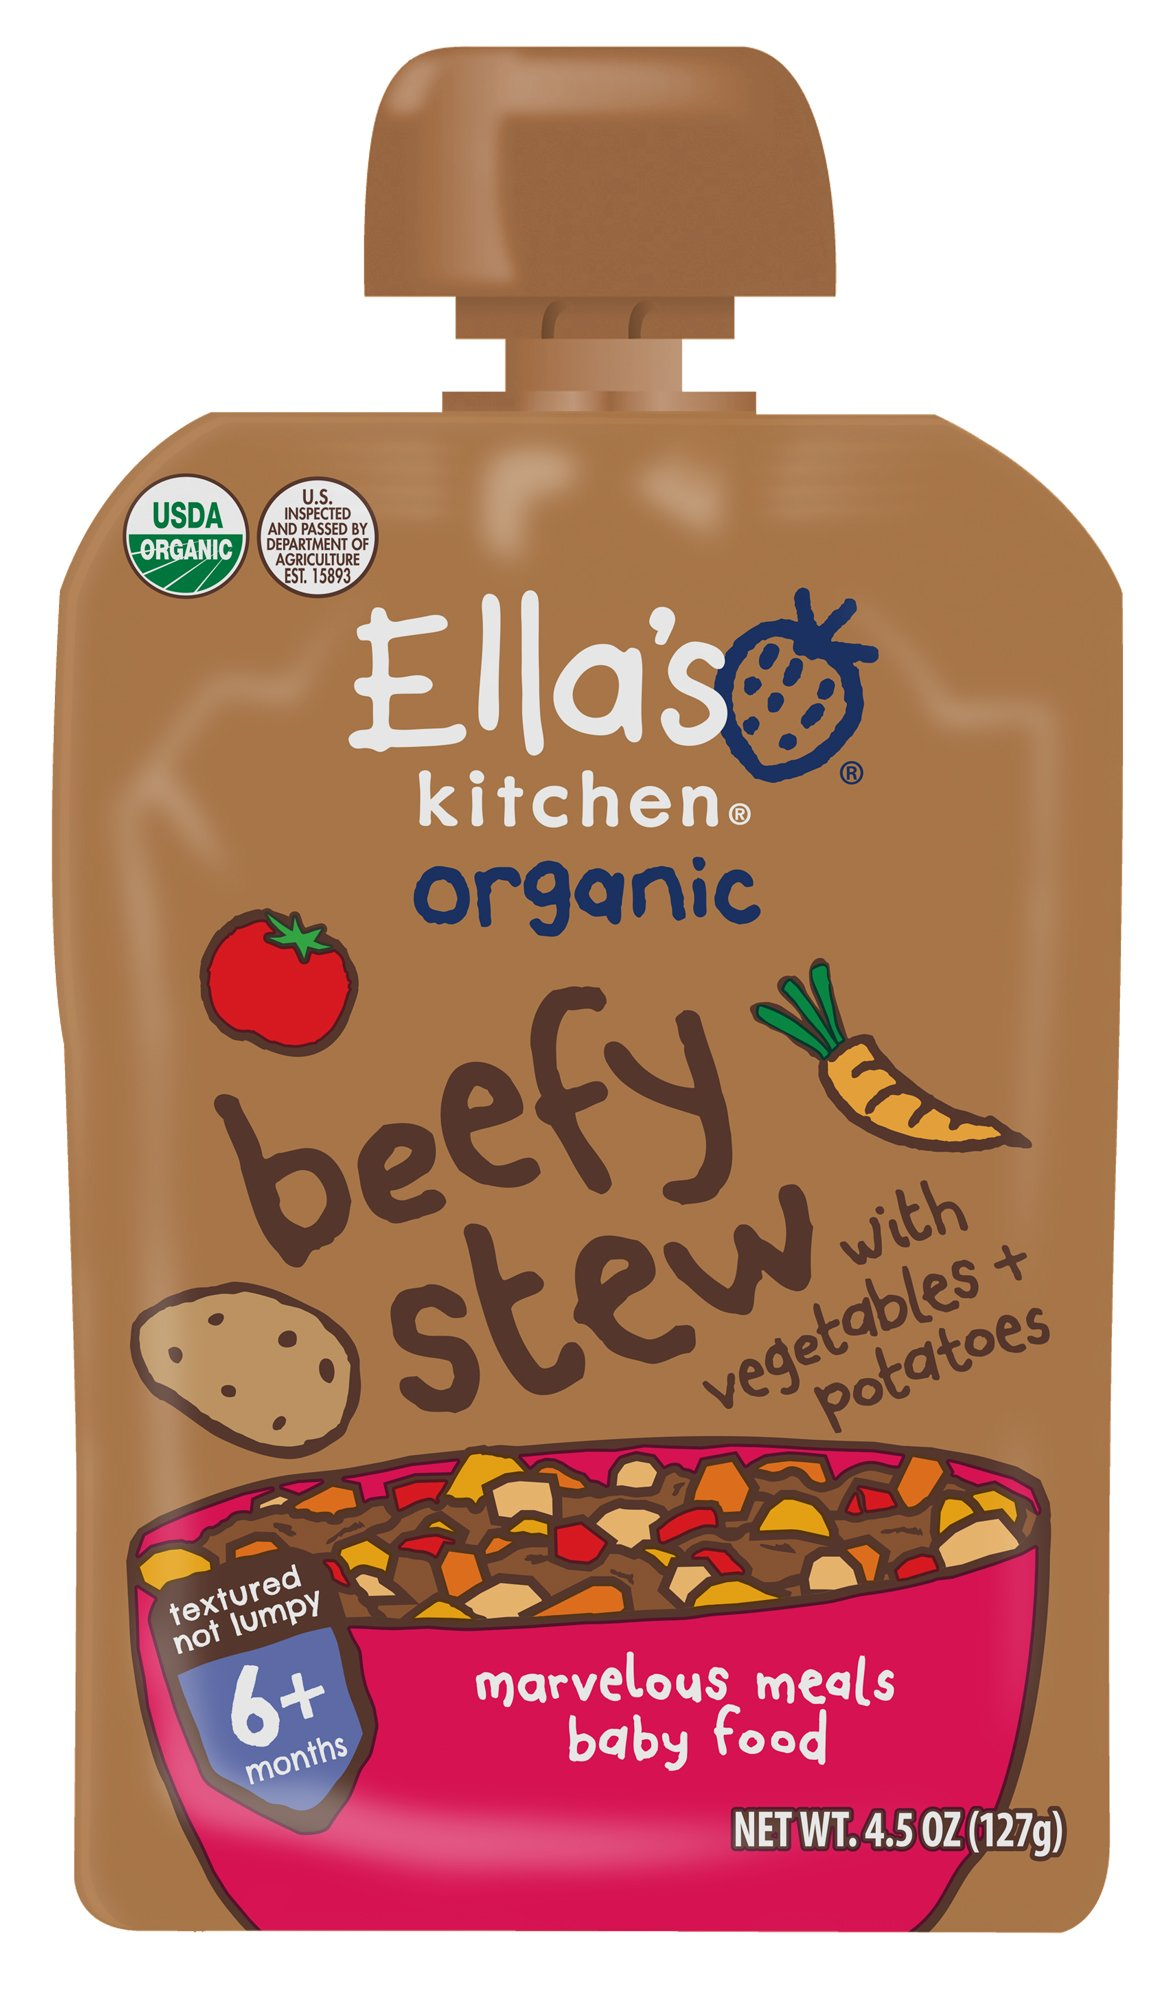 Ella's Kitchen Organic 6+ Months Baby Food, Beefy Stew with Vegetables and Potatoes, 4.5 oz. Pouch (Pack of 6)